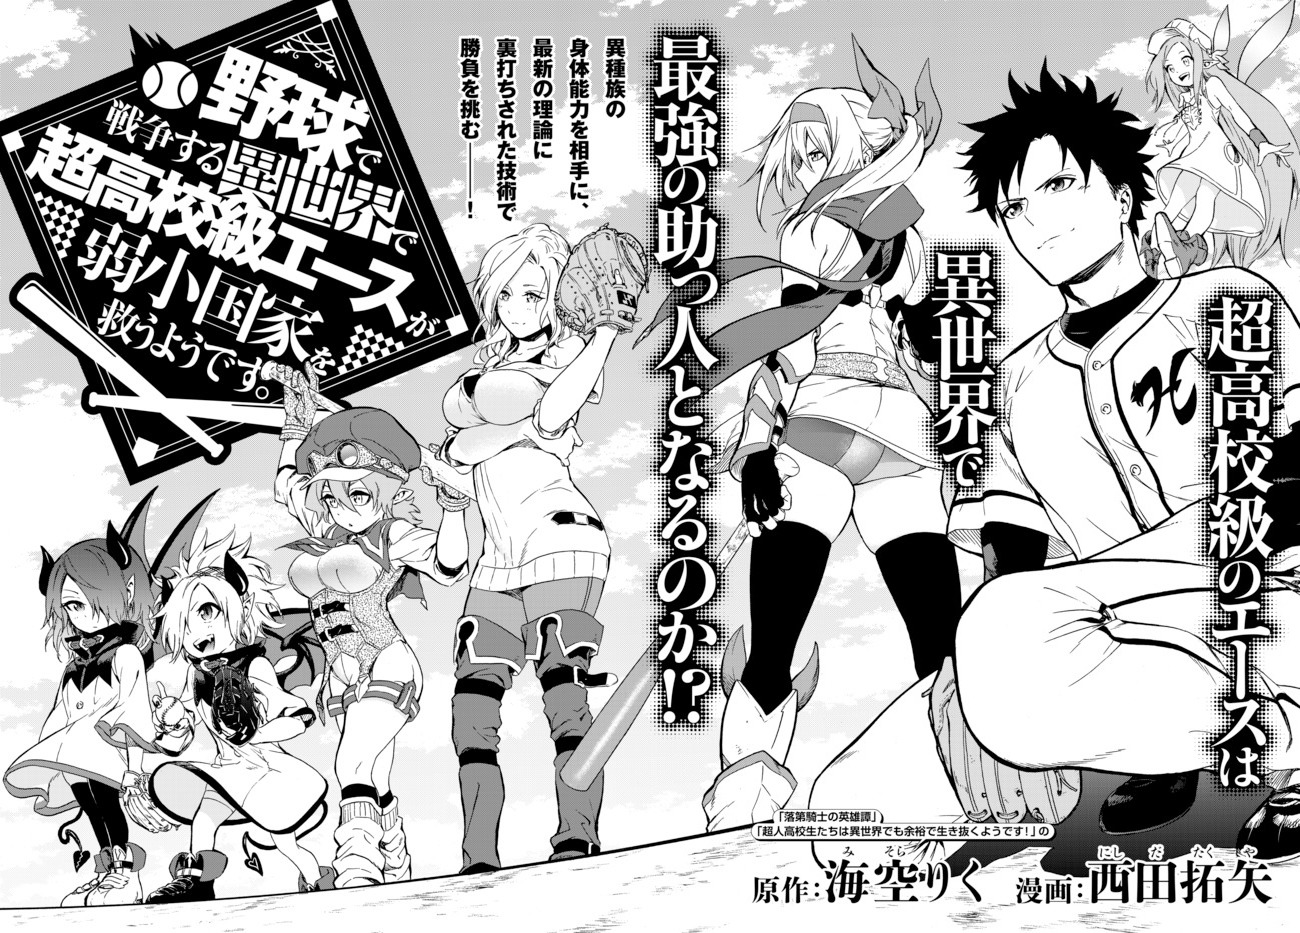 Manga isekai In Another World where Baseball is War, a High School Ace Player will Save a Weak Nation